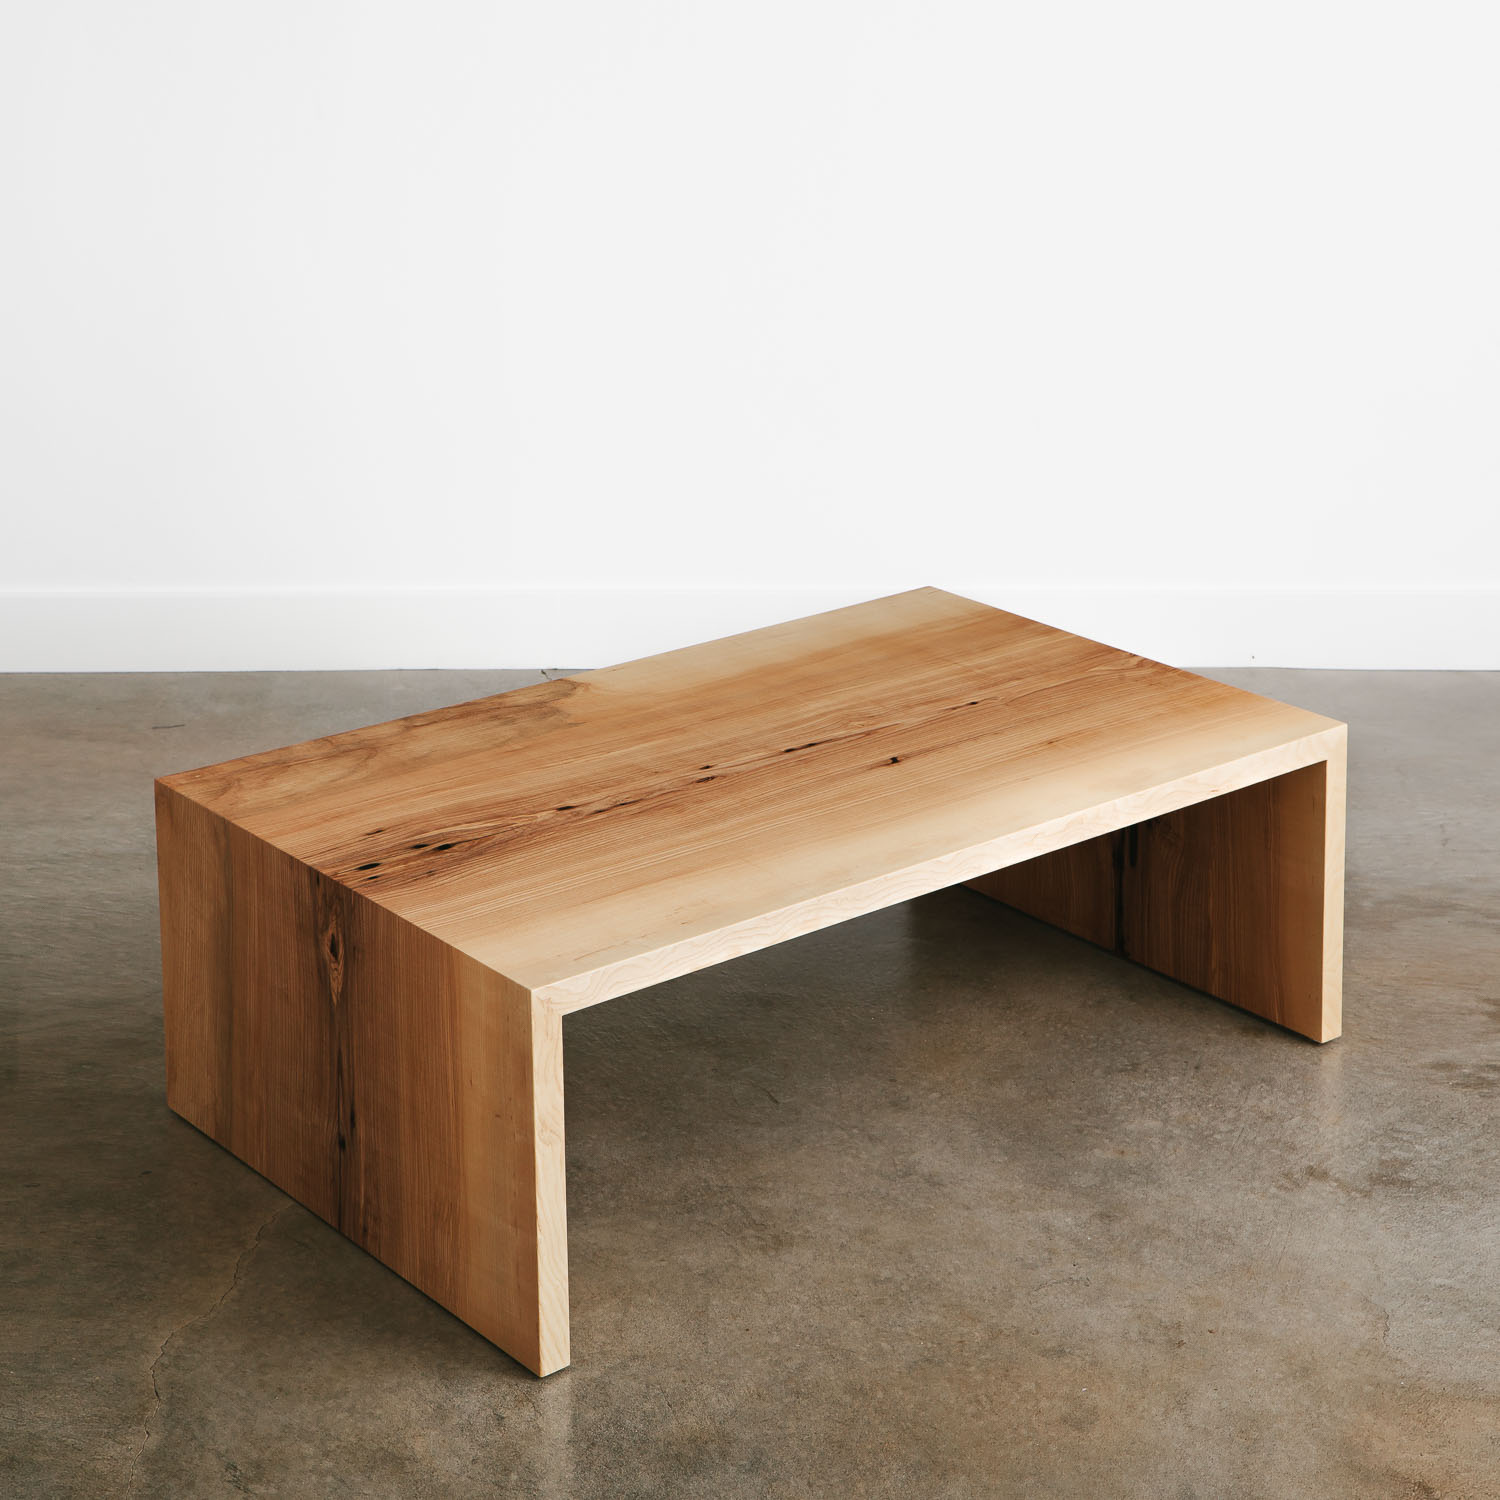 Marvelous Ash Coffee Table Elko Hardwoods Modern Live Edge Gmtry Best Dining Table And Chair Ideas Images Gmtryco